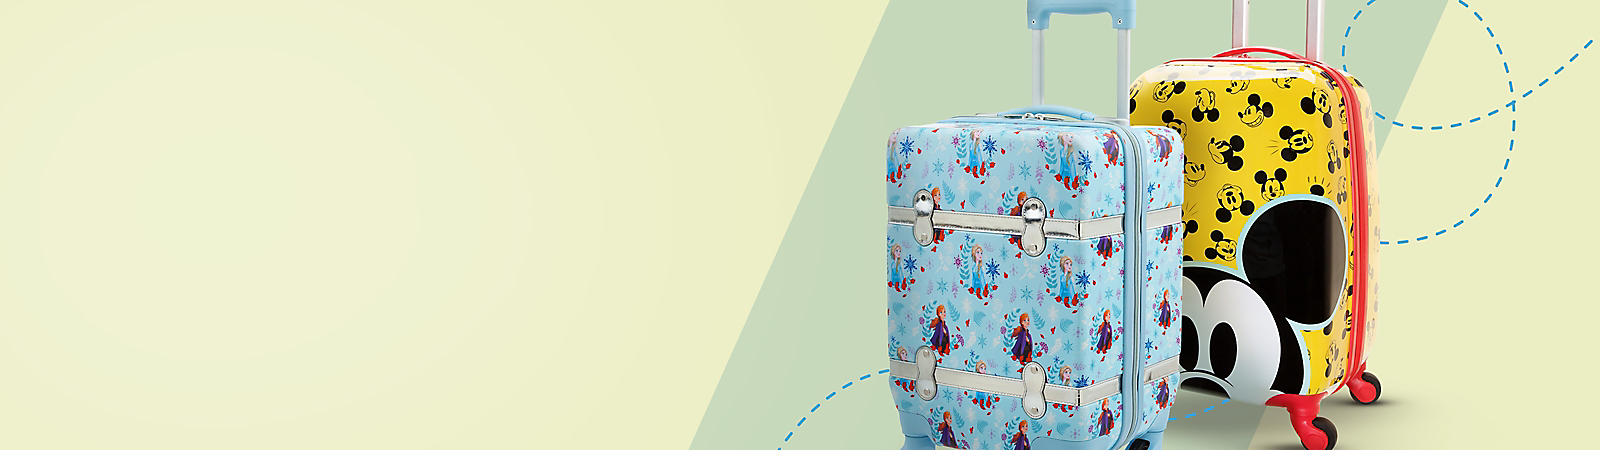 Background image of Kids' Luggage & Travel